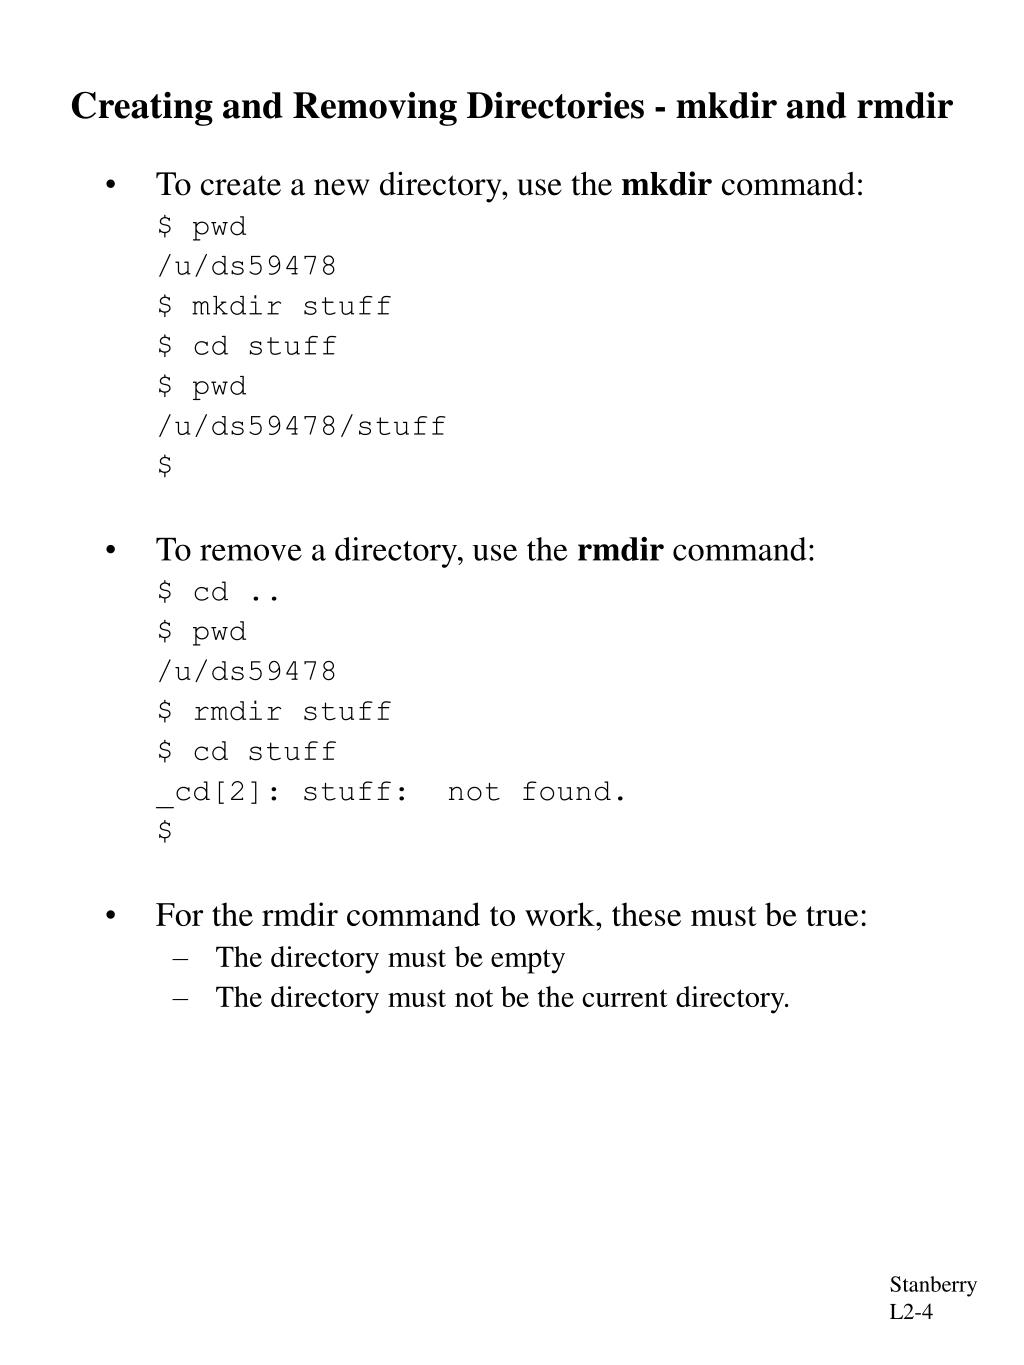 Creating and Removing Directories - mkdir and rmdir